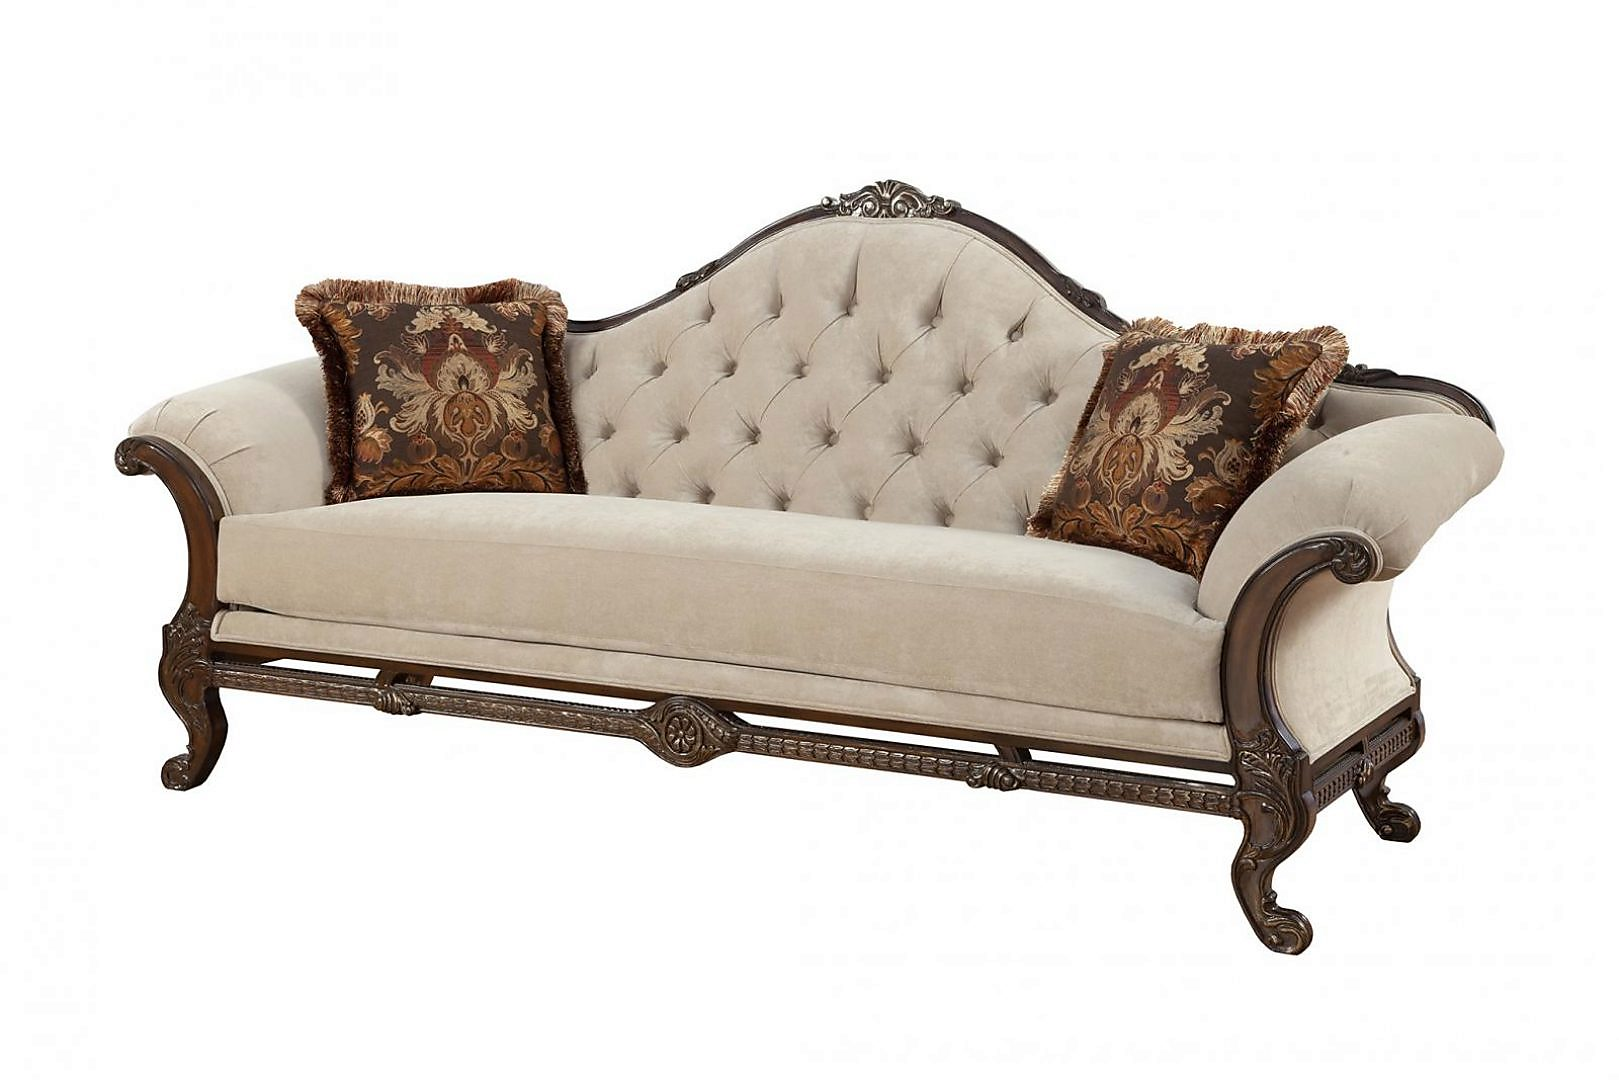 Bennetti Luxury Beige Chenille Dark Carved Wood Sofa Rosella Sofa BR Classic Traditional